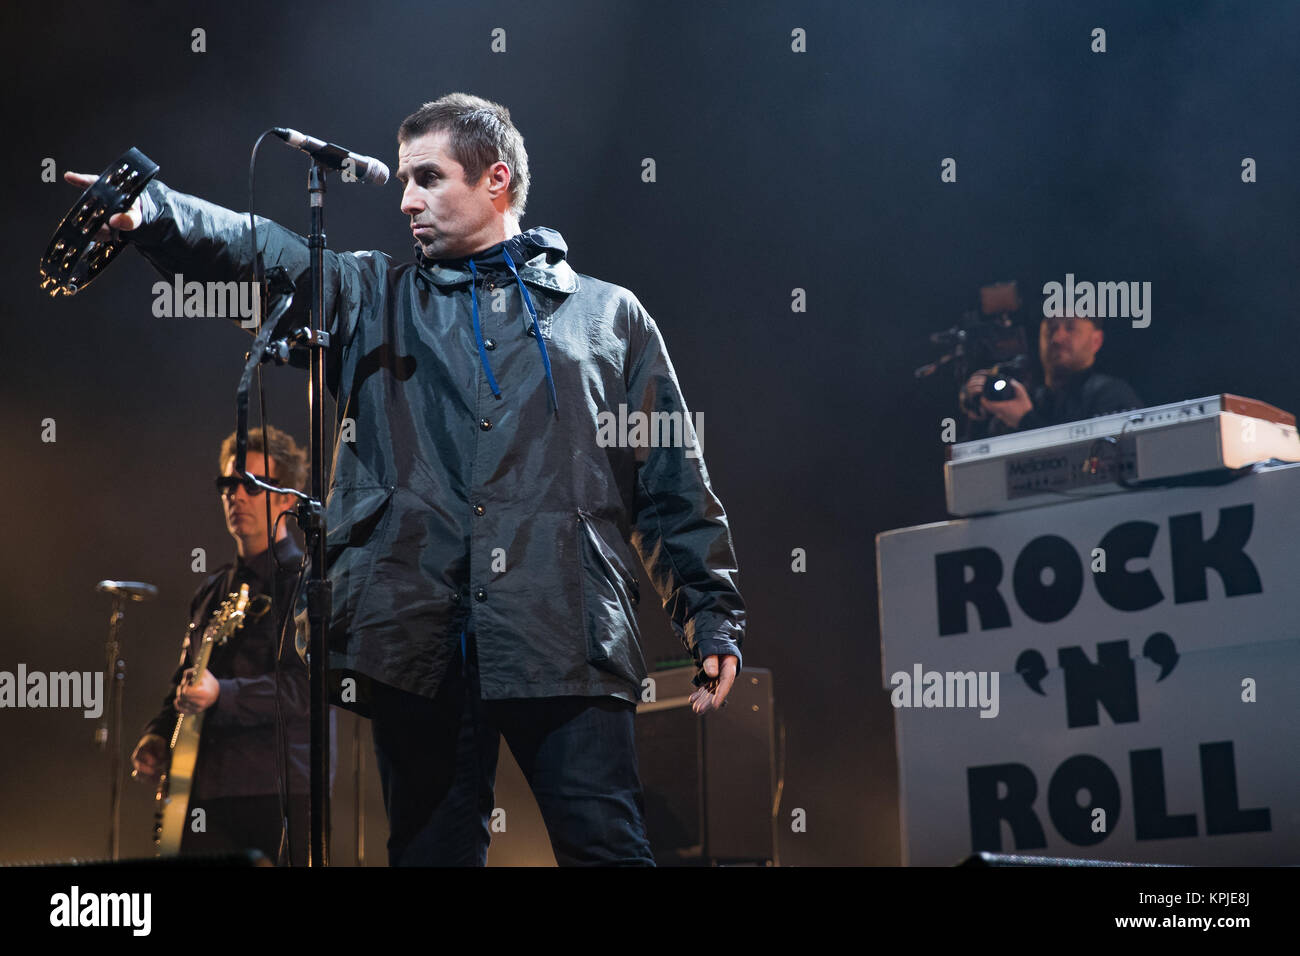 Brighton, UK. 15th Dec, 2017. Liam Gallagher performing his As You Were tour at The Brighton Centre, England. Credit: - Stock Image